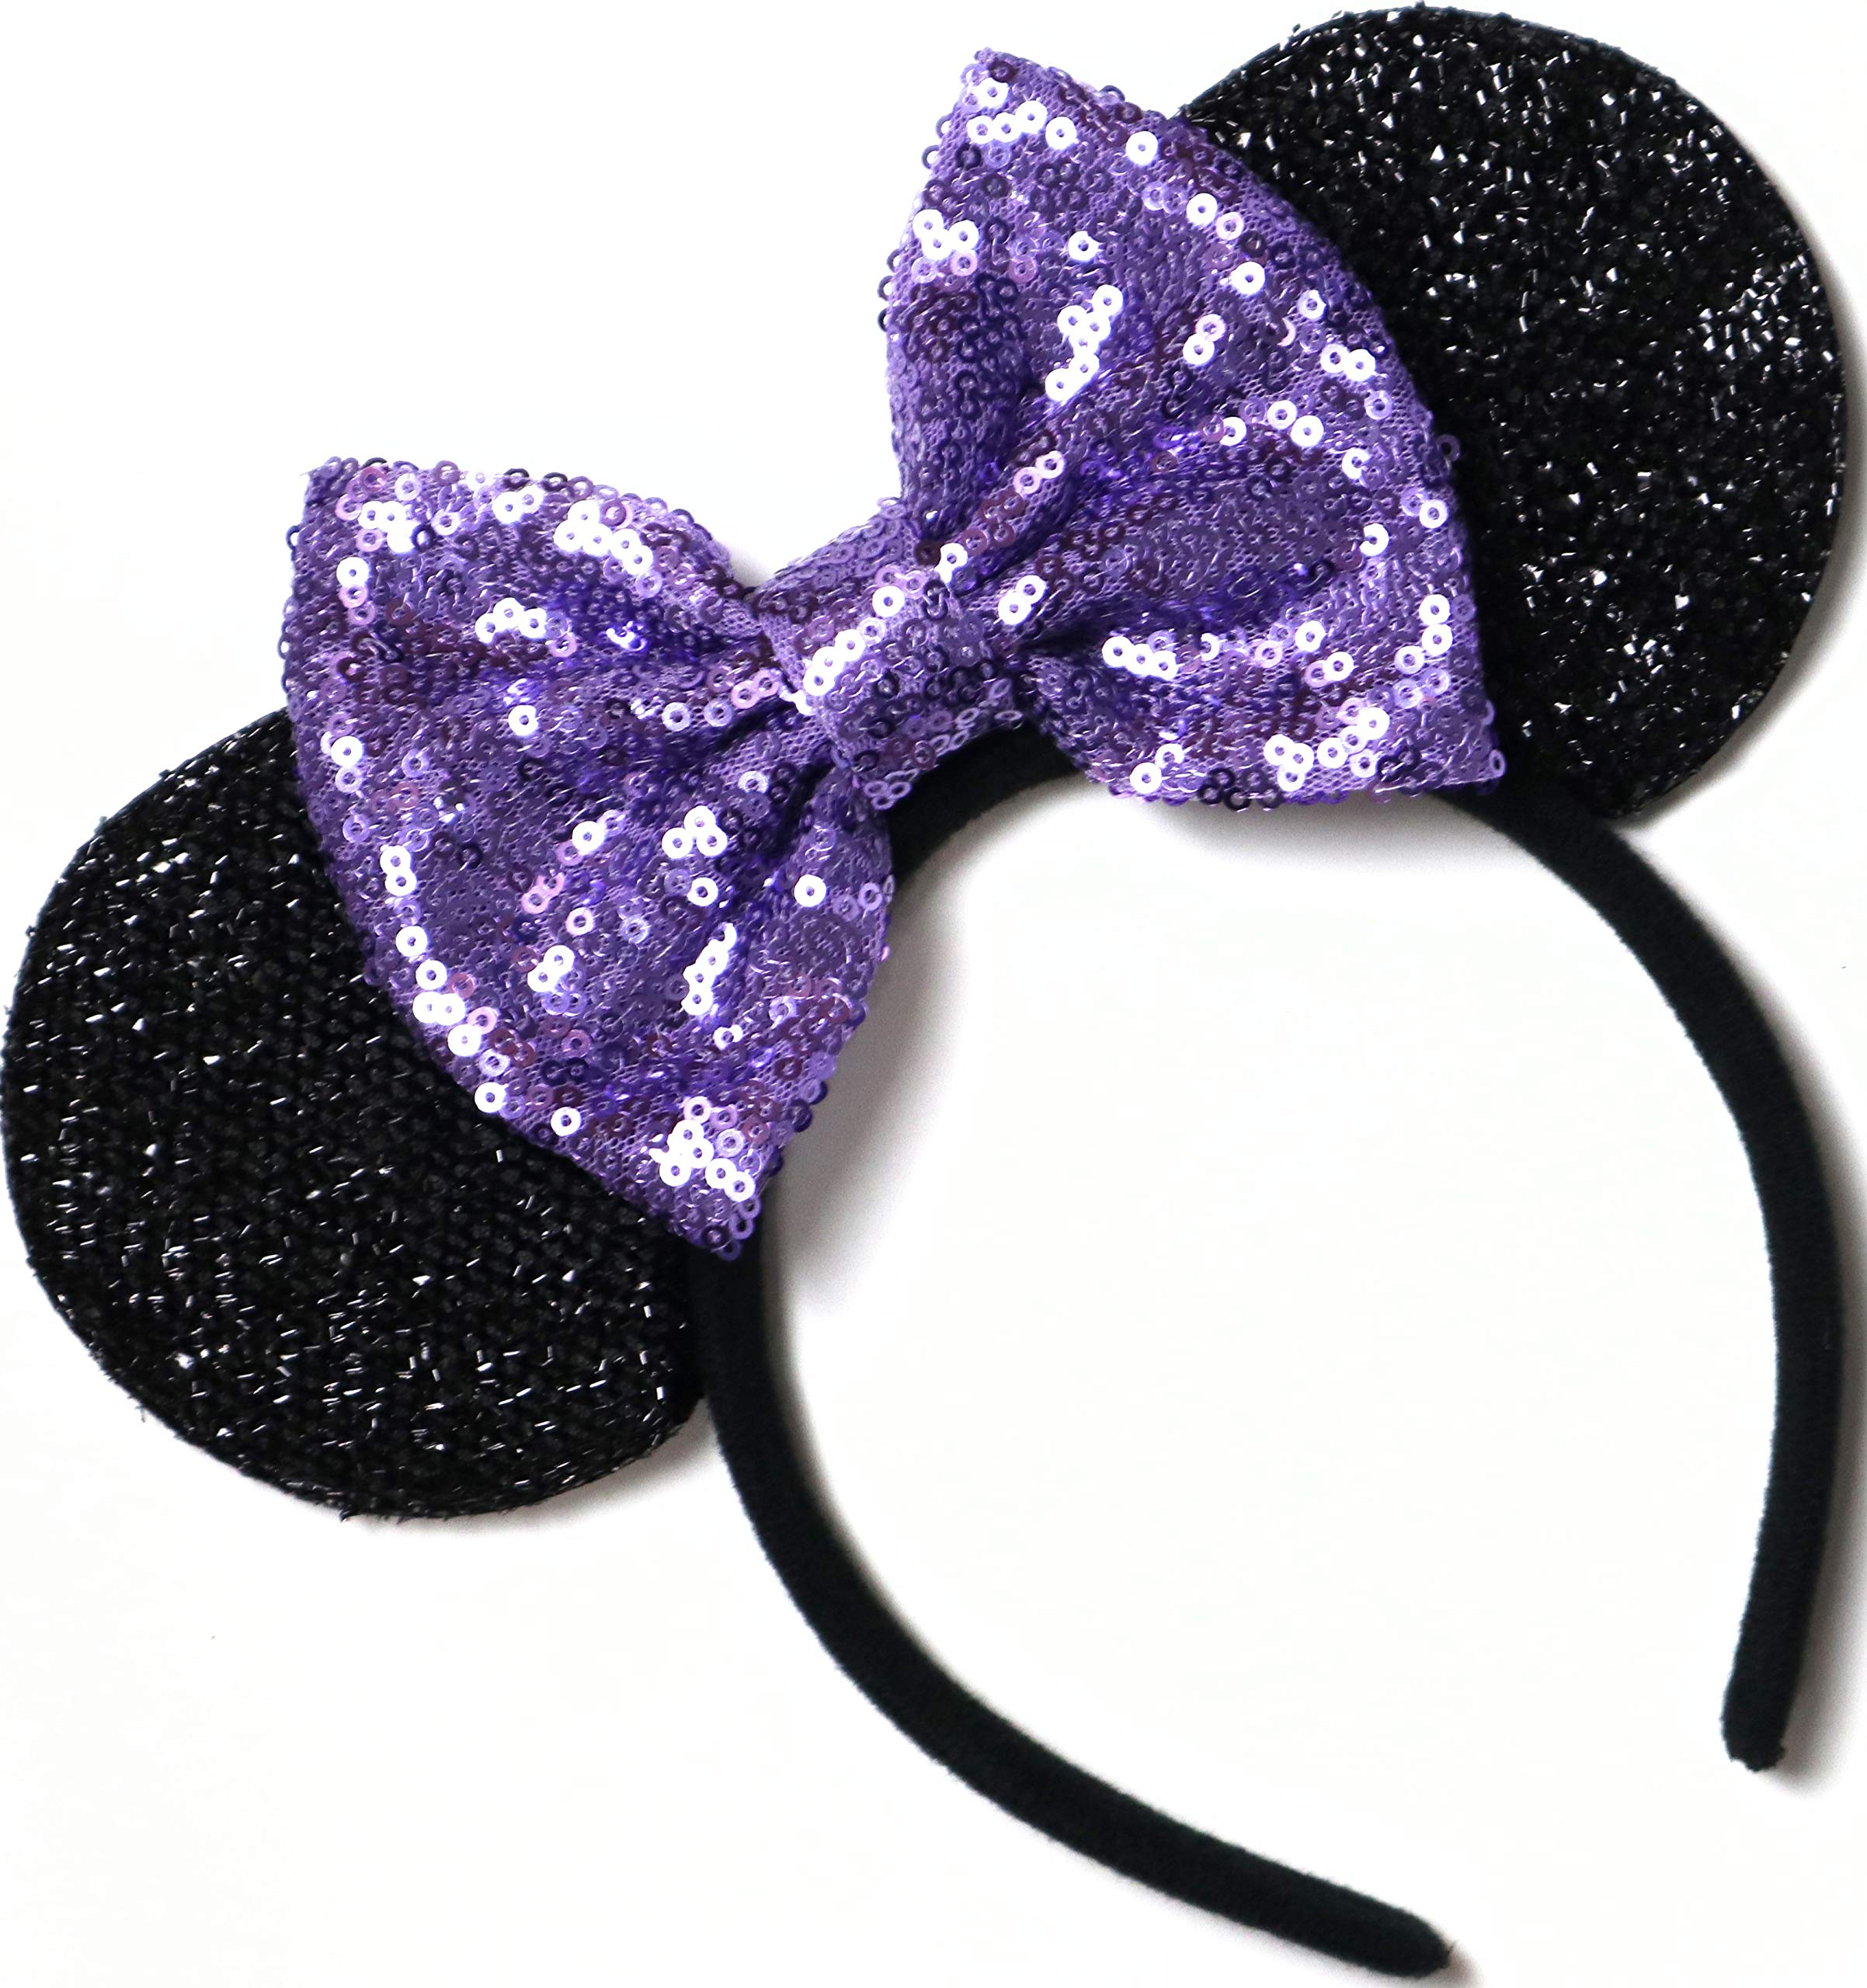 CLGIFT Purple Mickey Ears, Sparkly Mickey Ears, Daisy Mickey Ears, Tangled Mickey Ears, Minnie Ears, Lilac Mickey Ears by CLGIFT (Image #1)